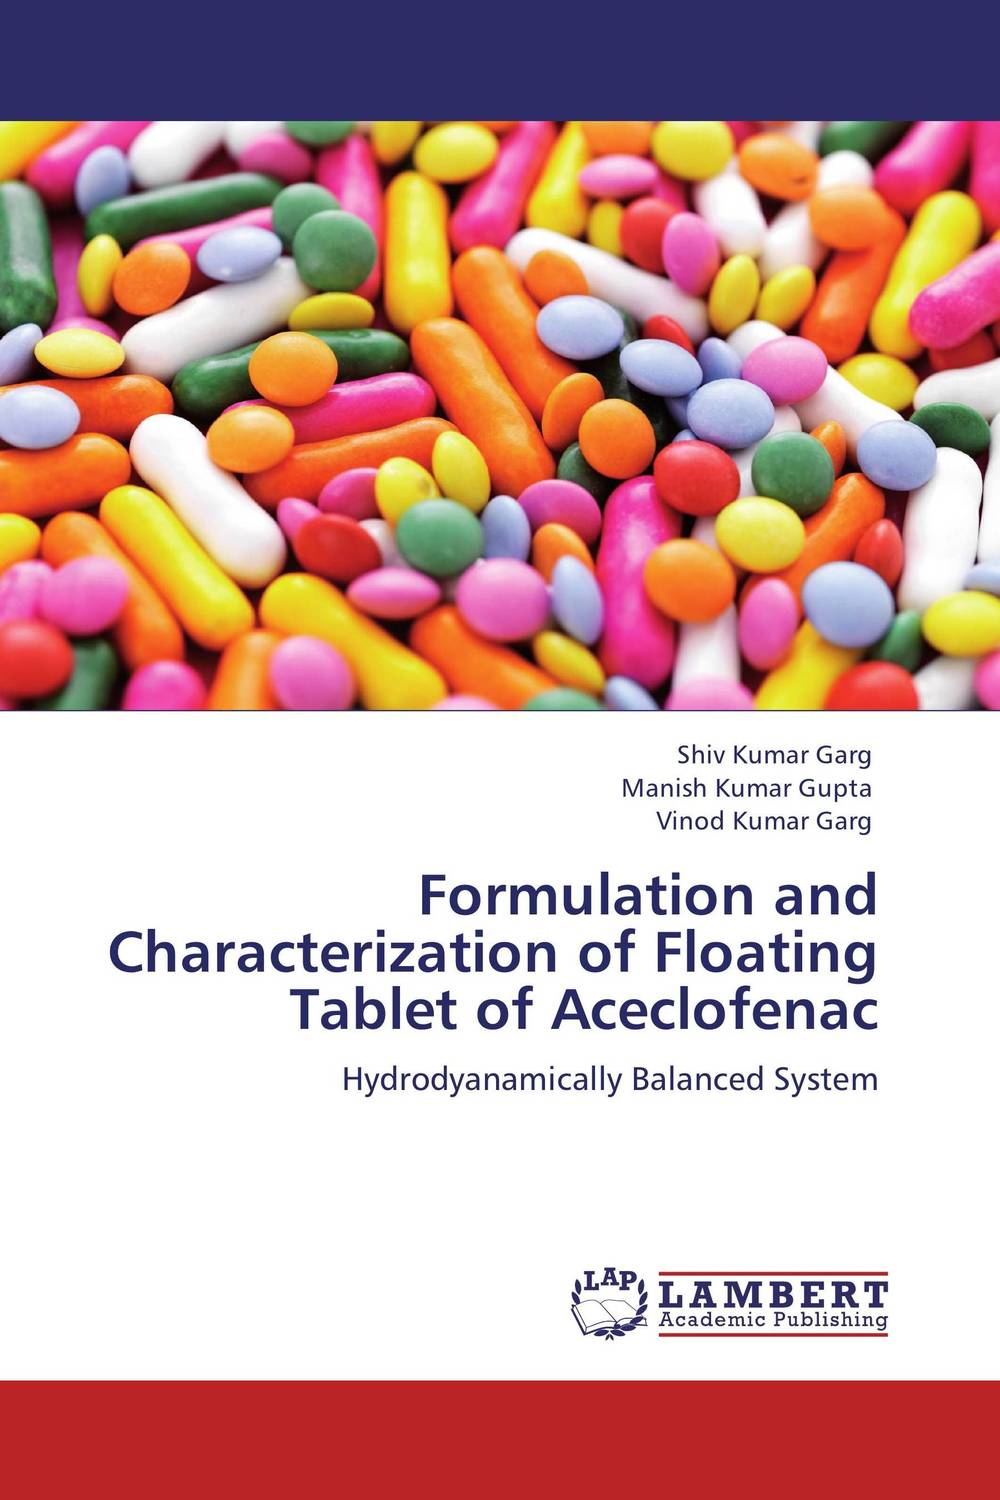 Formulation and Characterization of Floating Tablet of Aceclofenac husk